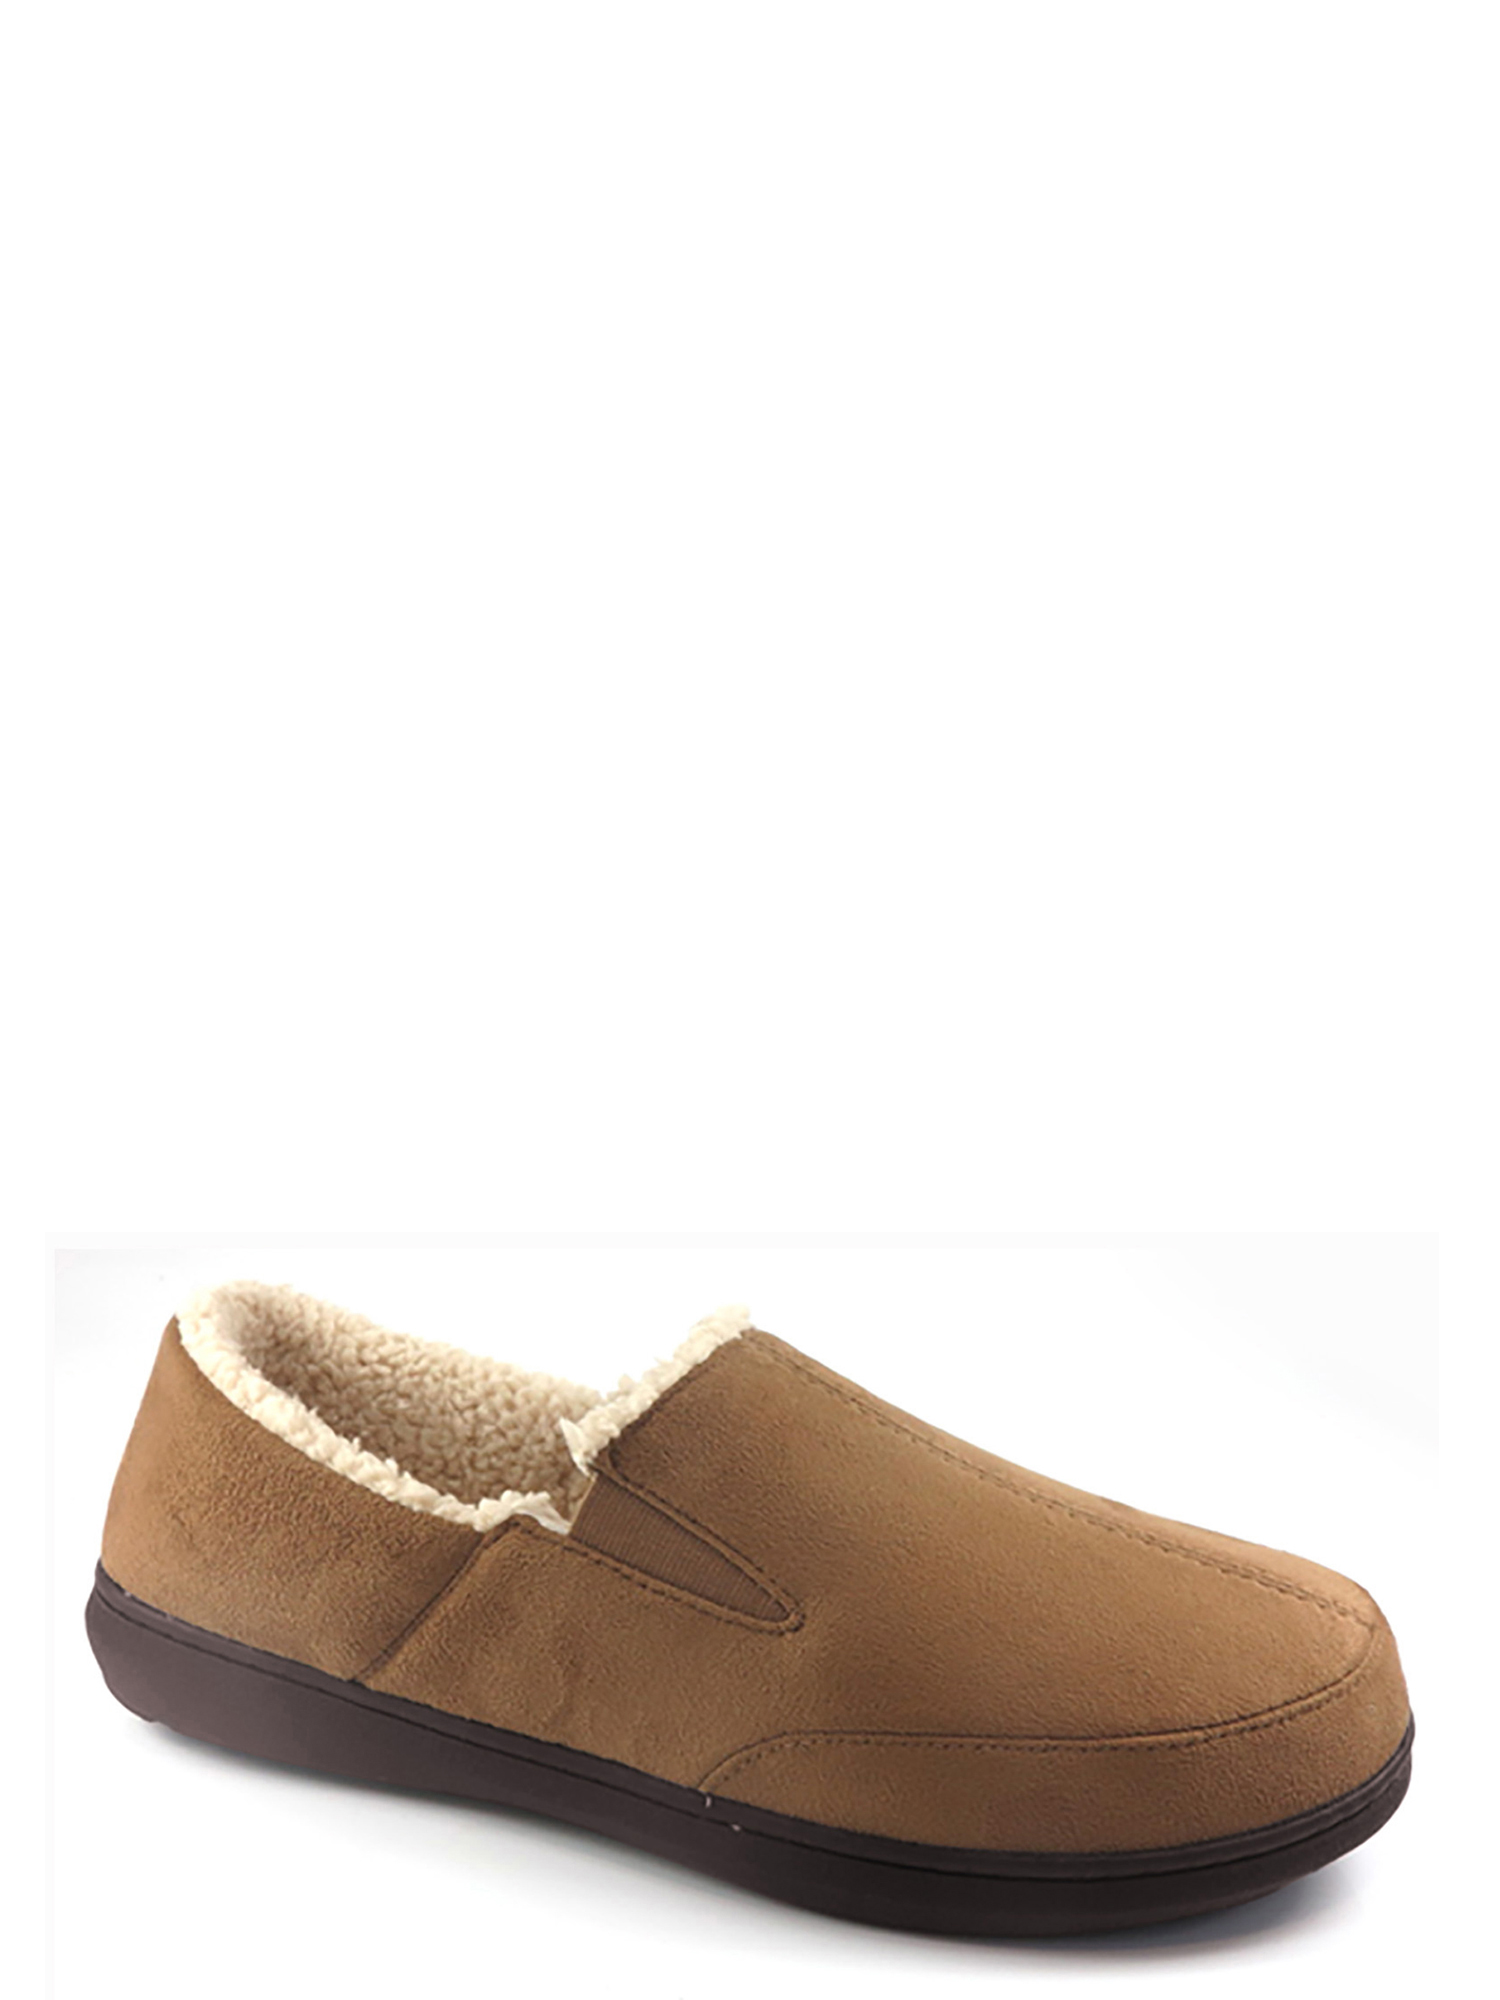 George Moccasin Slippers Mens Tie Brown Slip Loafer Sherpa New S Size